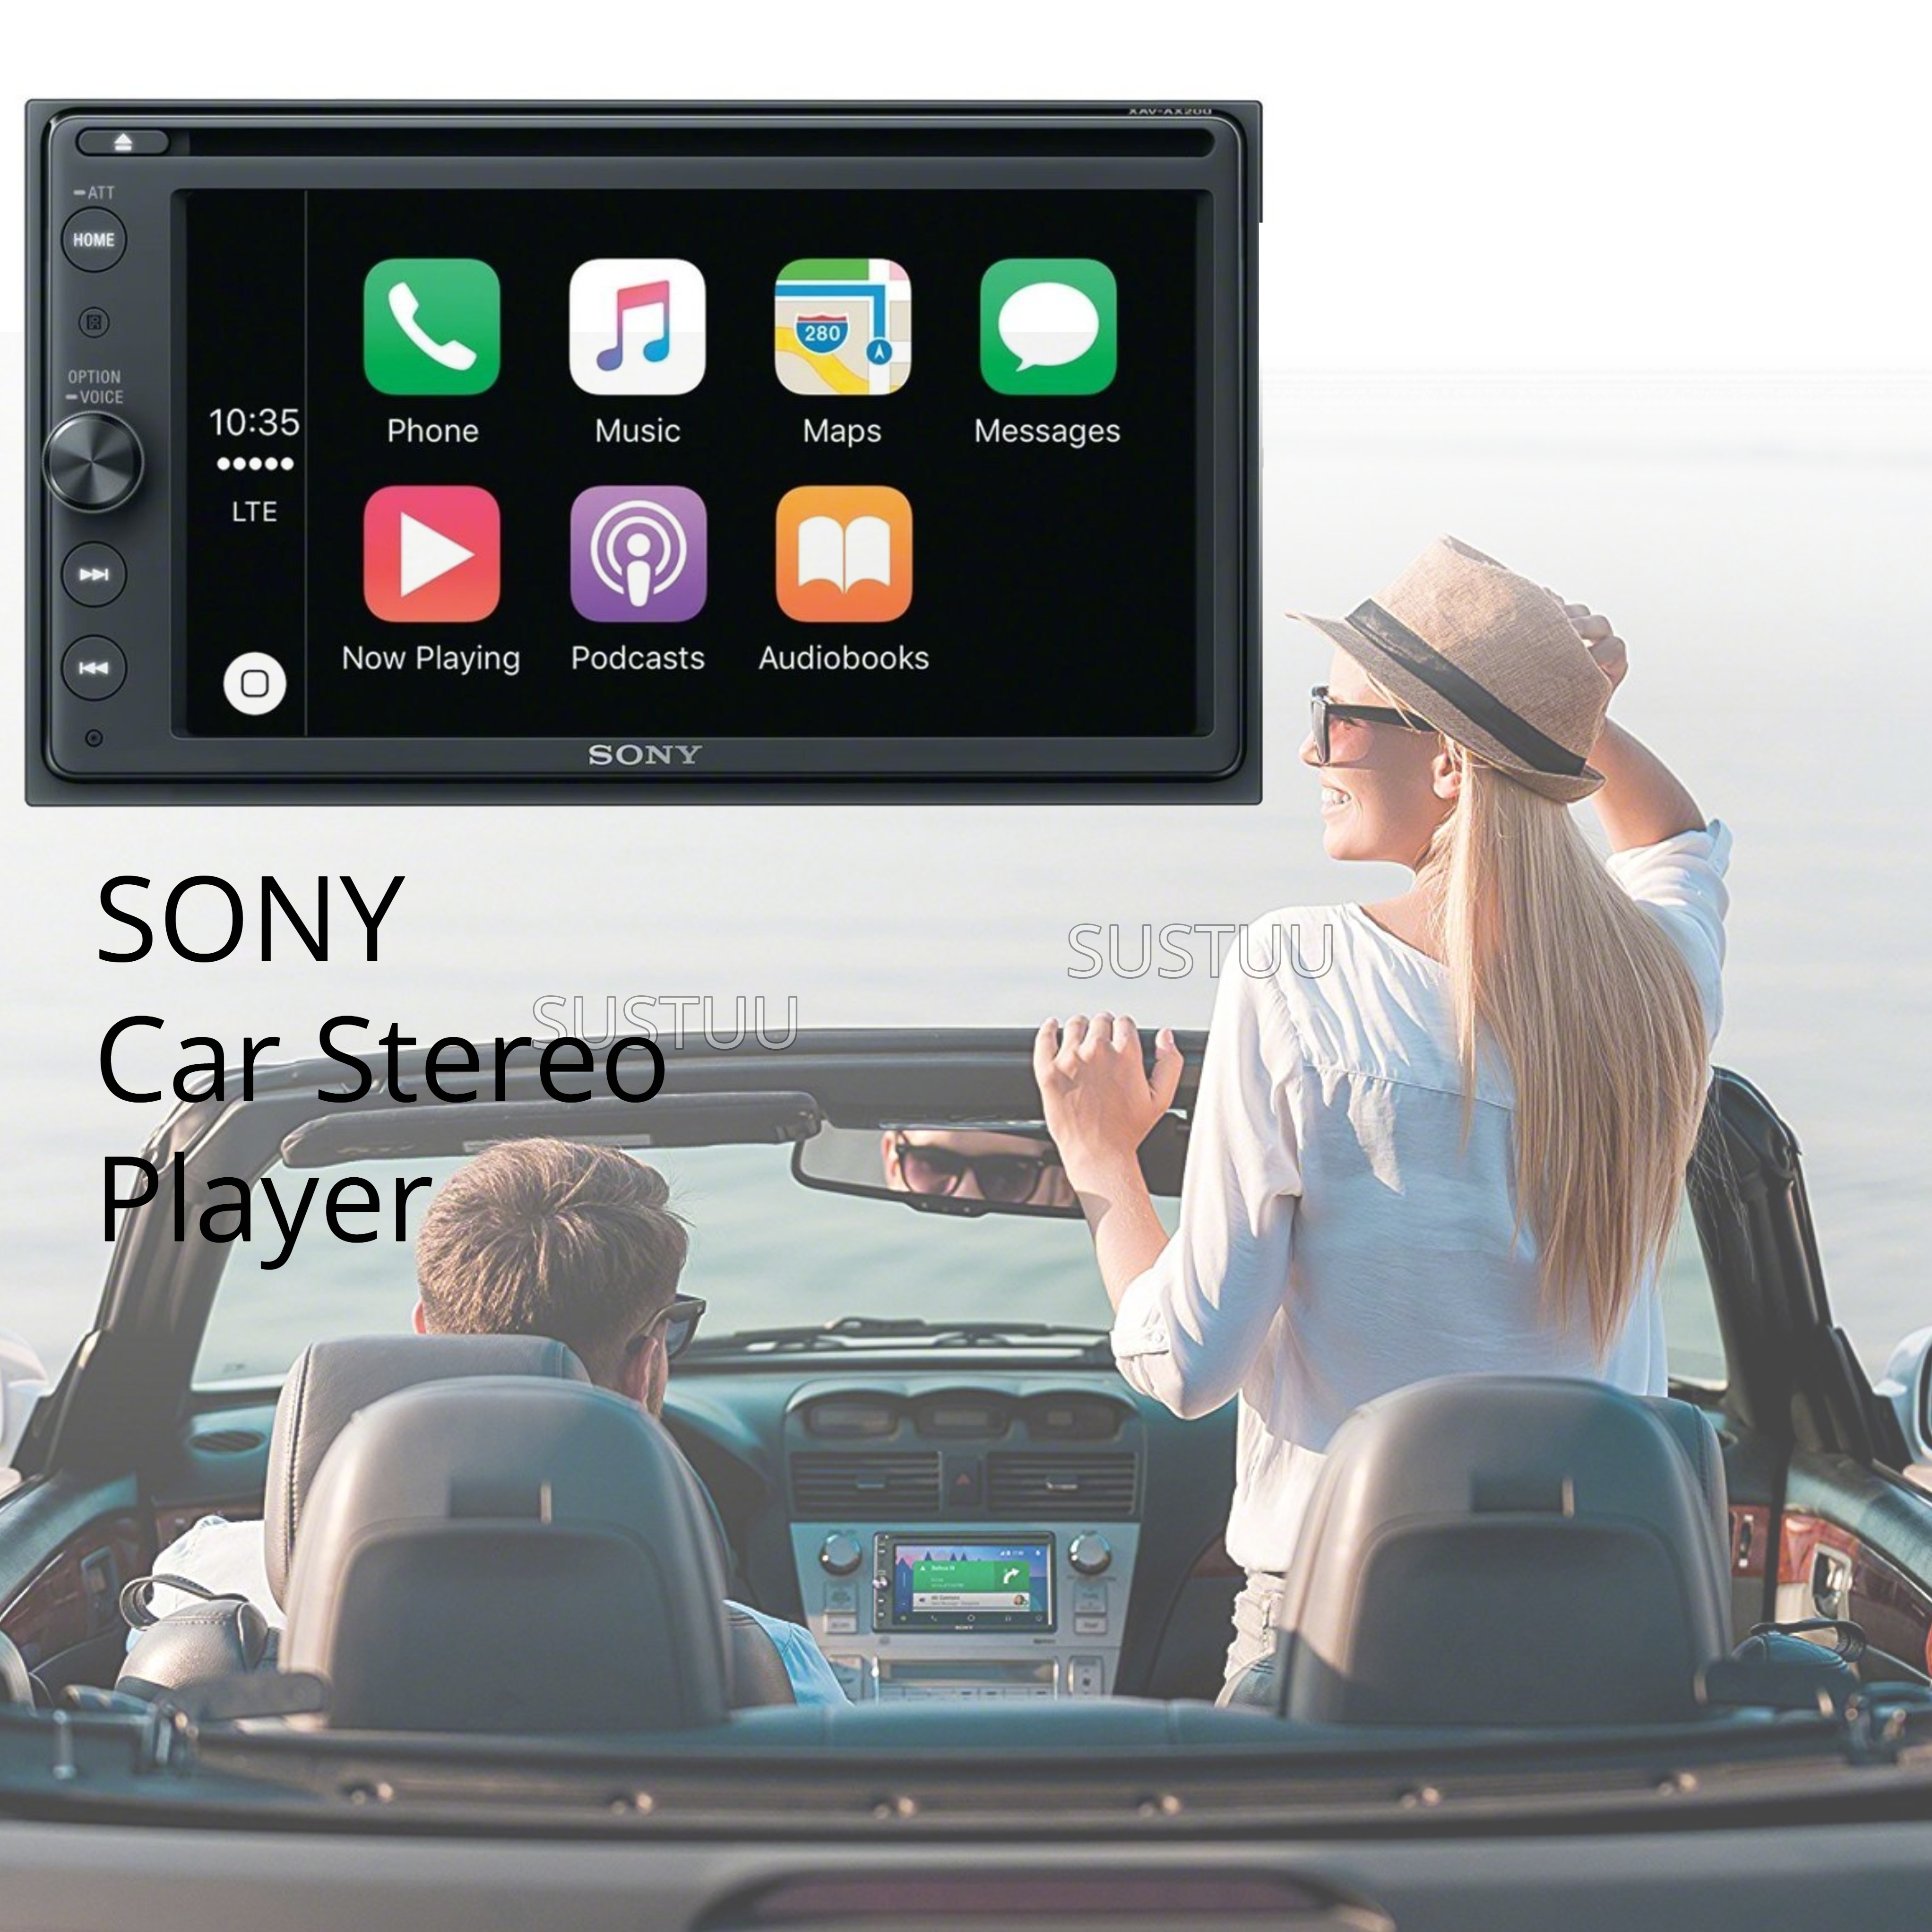 Sony Car Stereo | DVD Player | 2-Din Media Receiver | Android Auto